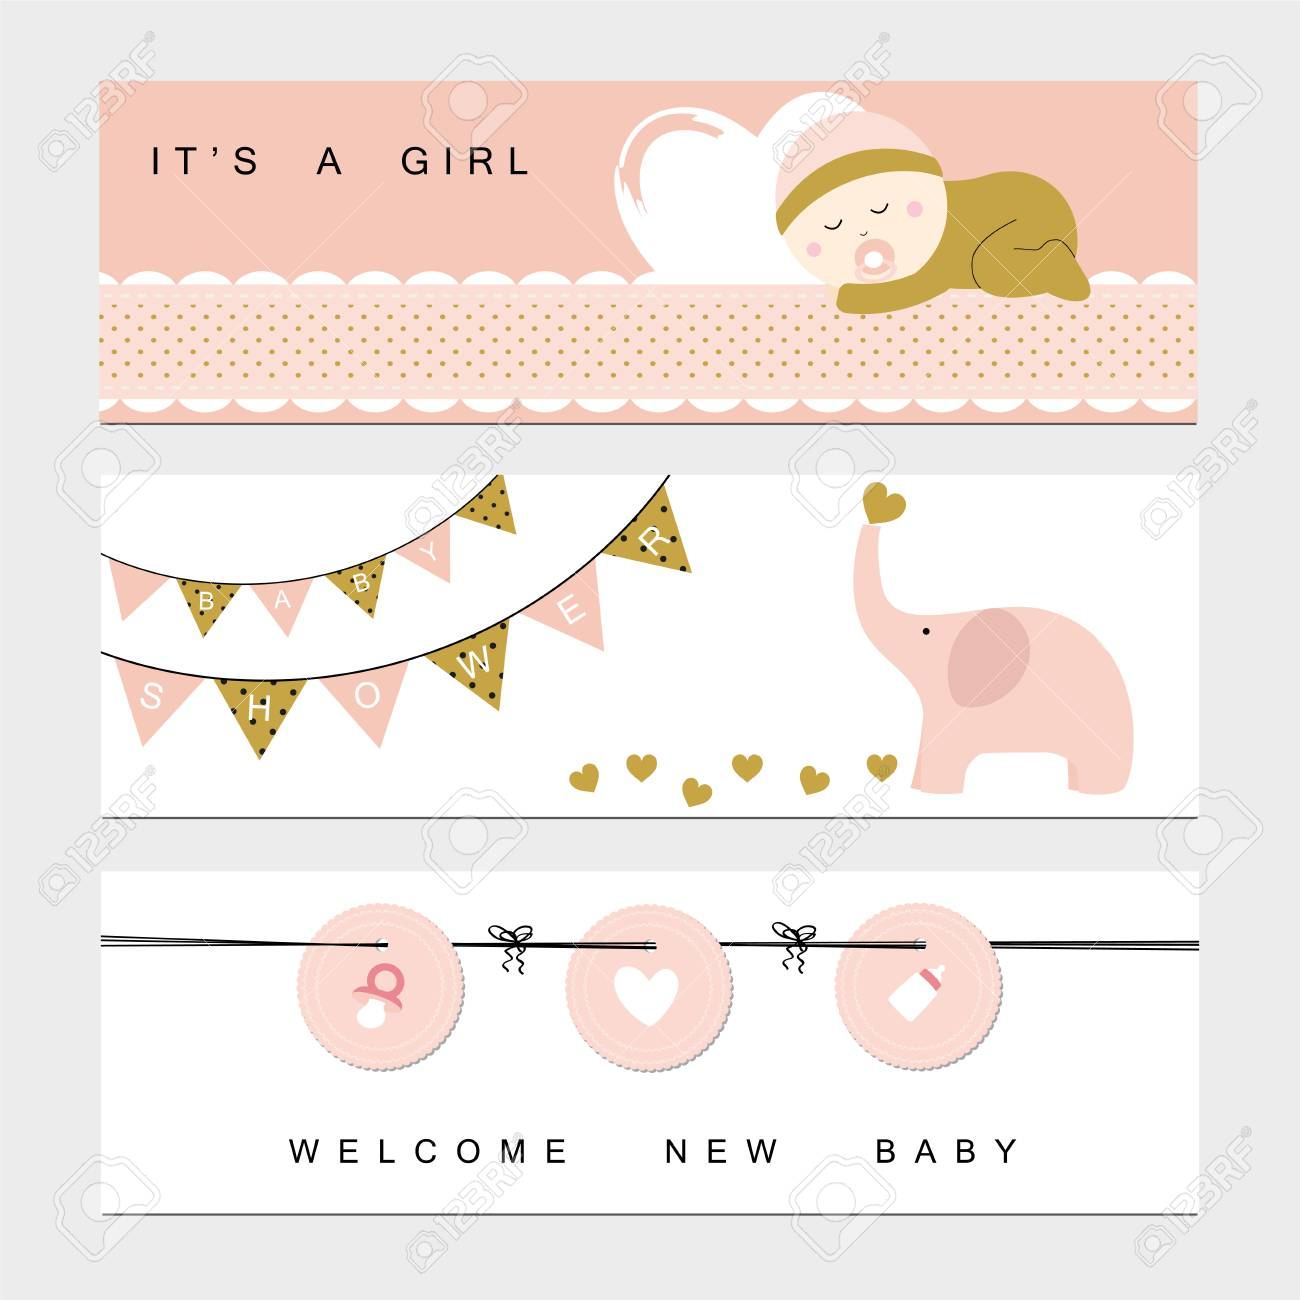 Baby Shower Banners For The Baby Girl Royalty Free Cliparts Vectors And Stock Illustration Image 74350967